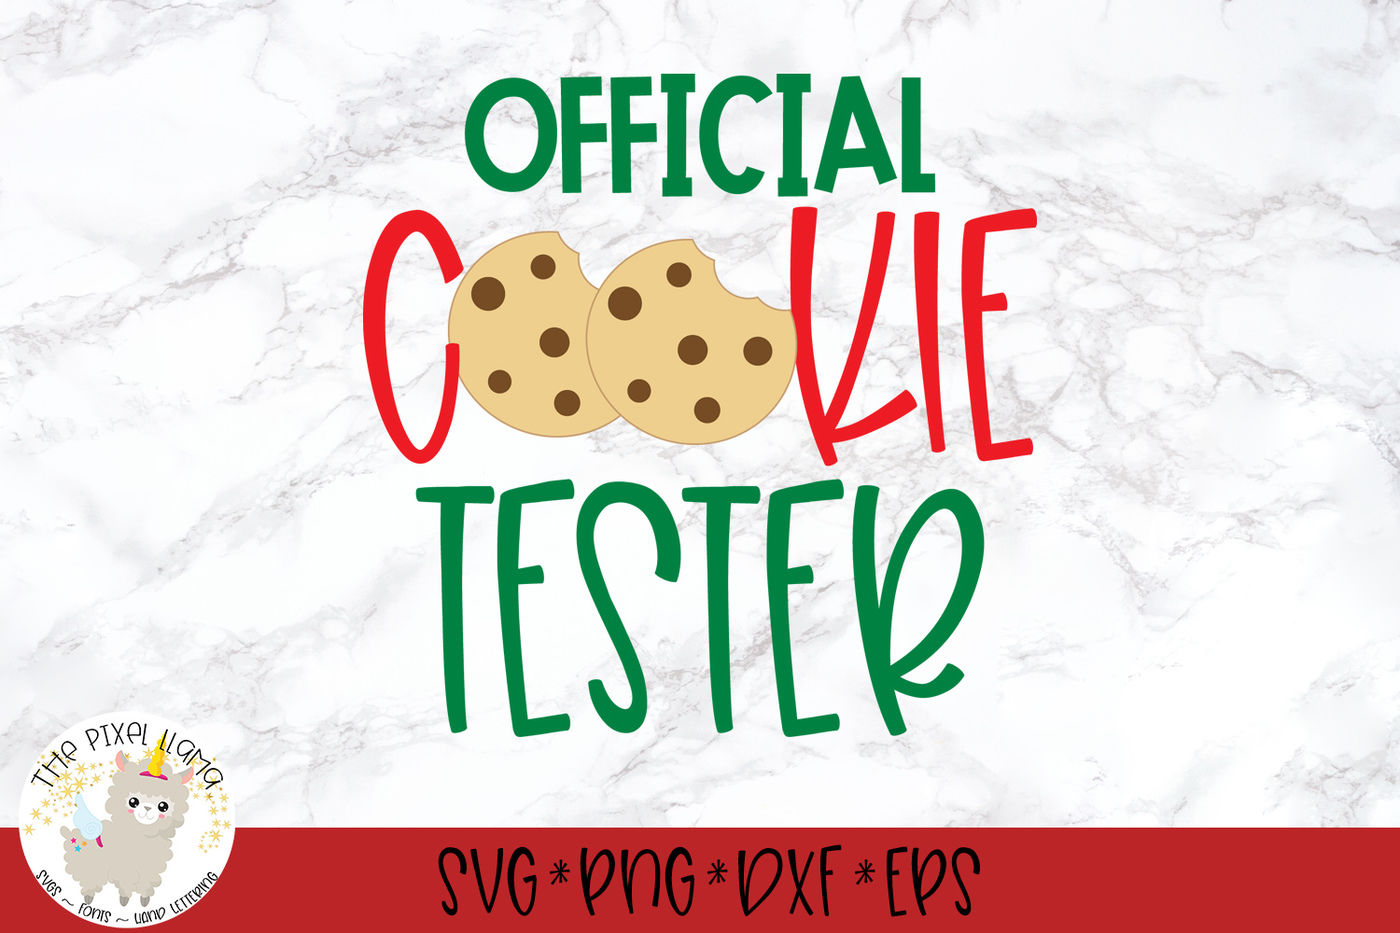 Official Cookie Tester Svg Cut File By The Pixel Llama Thehungryjpeg Com